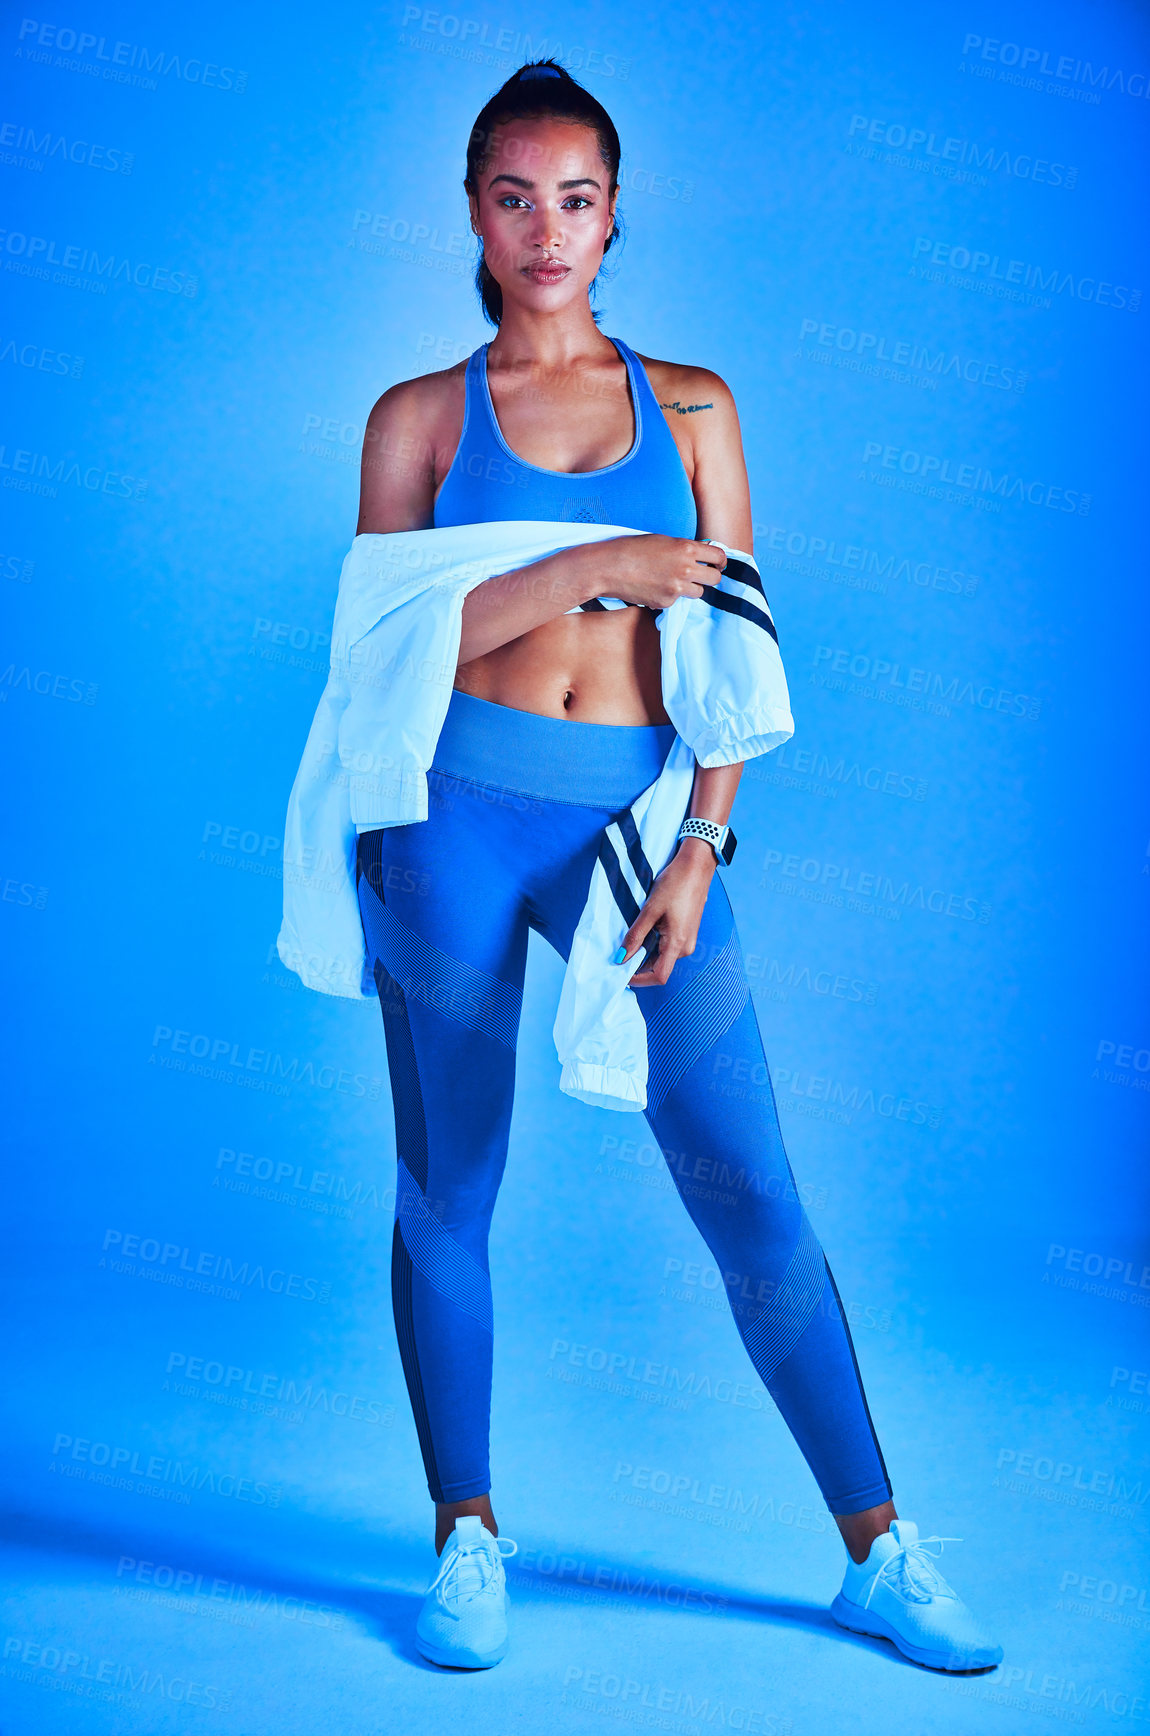 Buy stock photo Full length portrait of an attractive young female athlete posing against a blue background